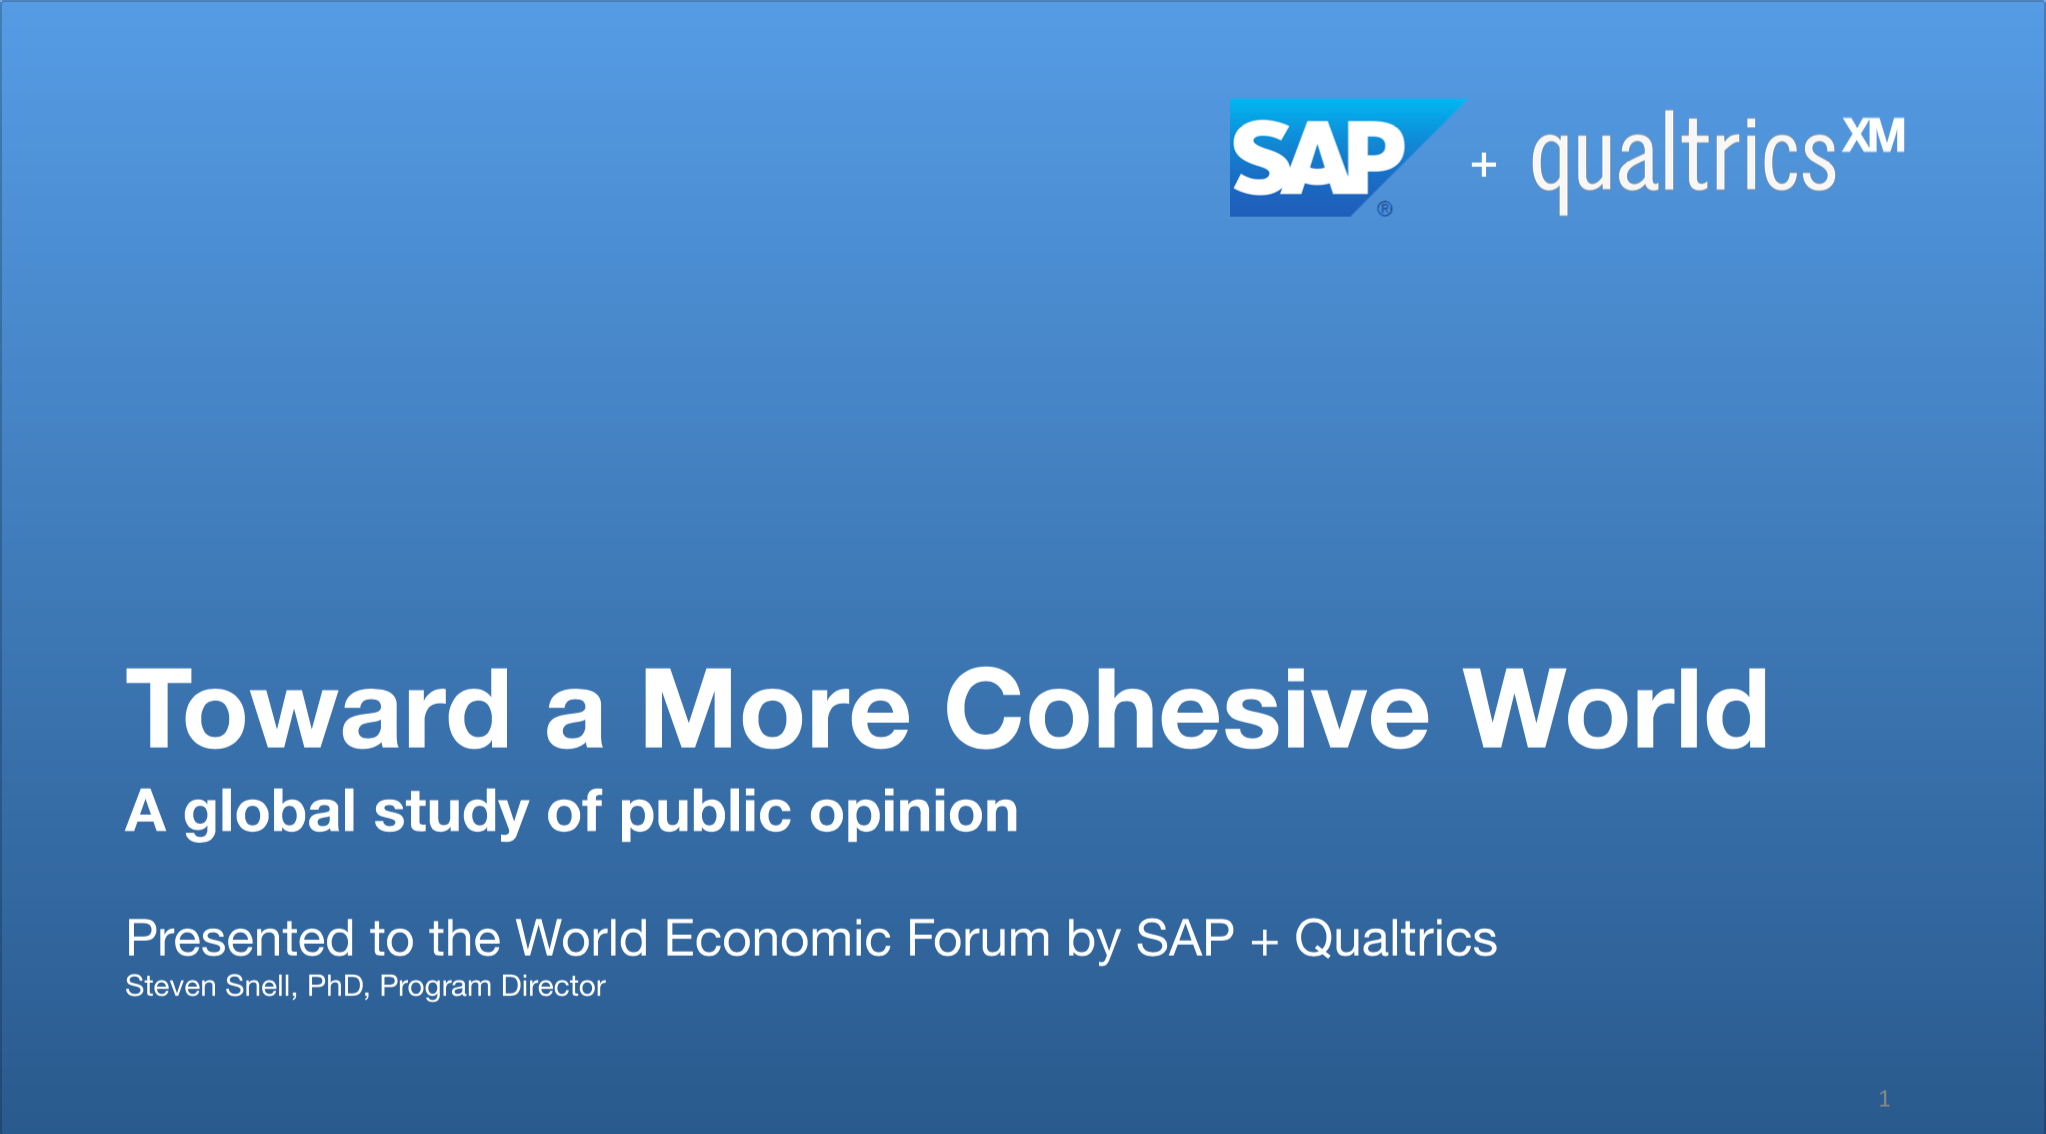 A global study of public opinion on Cohesive World